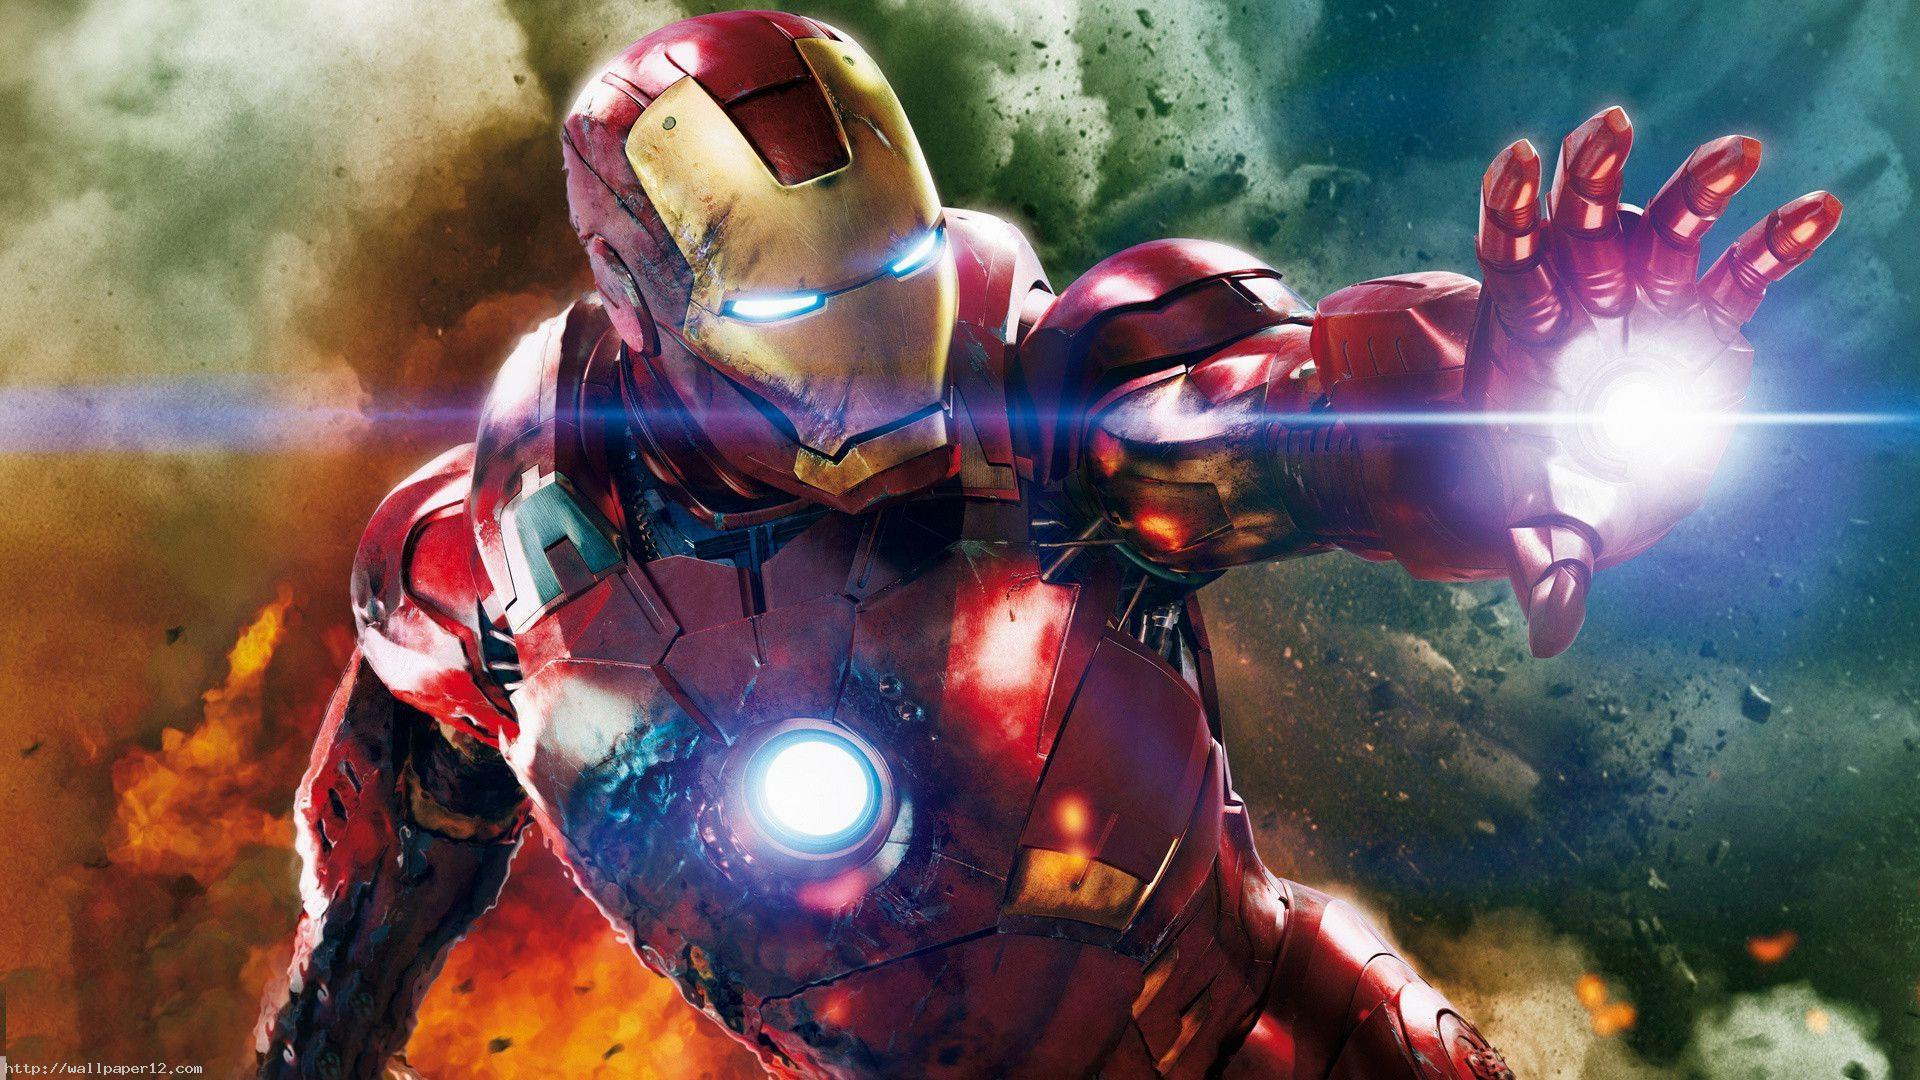 Iron Man Hd Desktop Wallpaper Widescreen High Definition 1920x1080